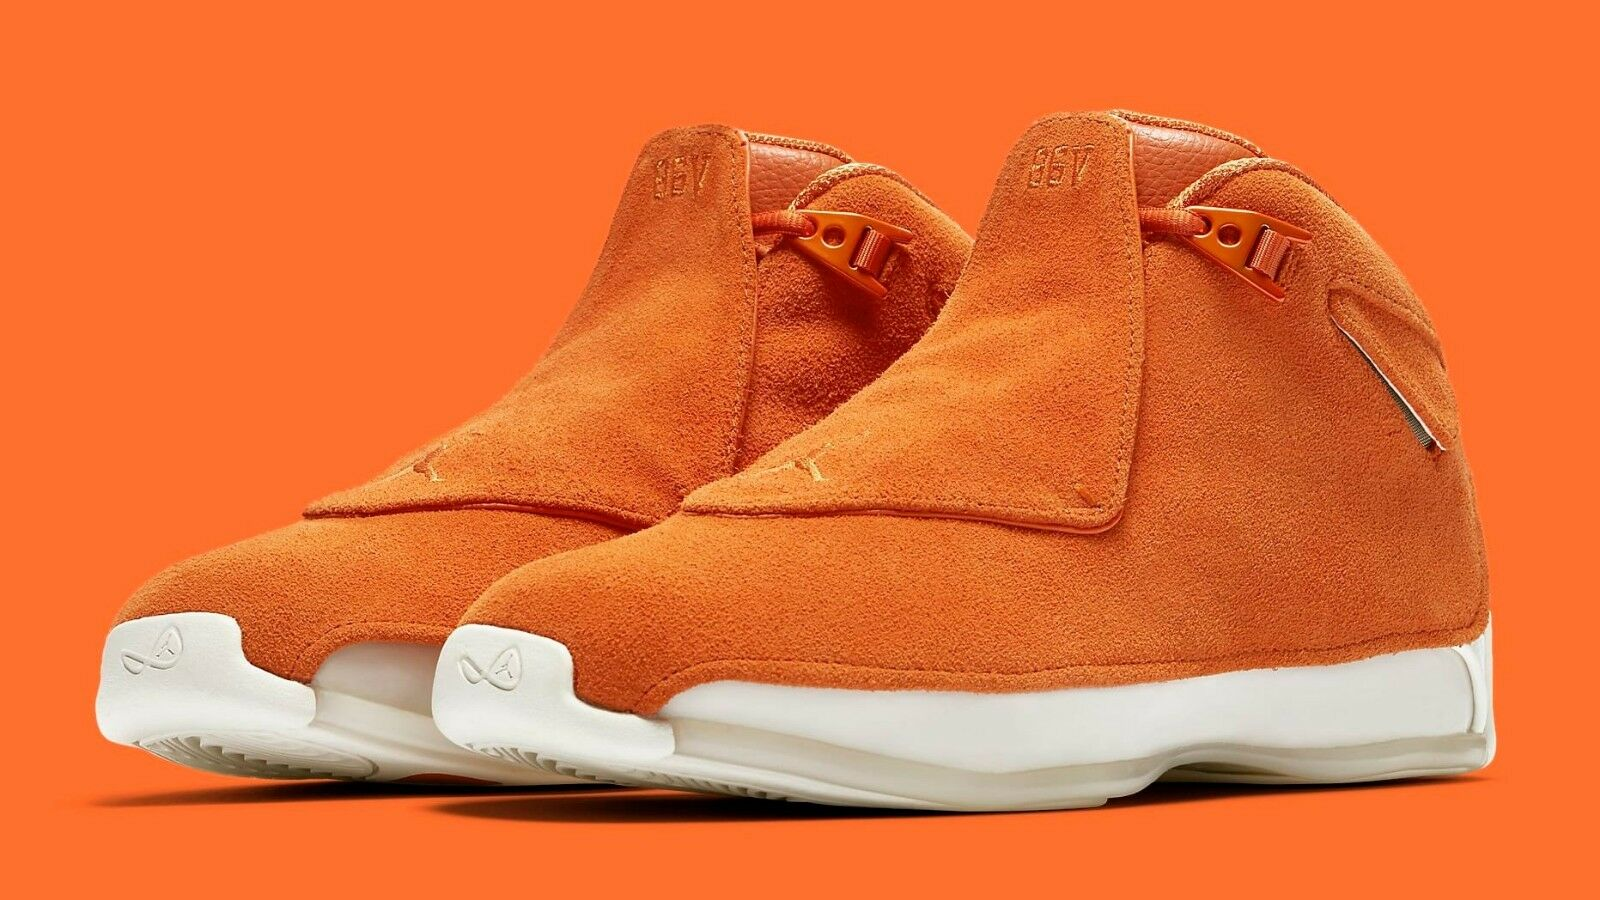 AIR JORDAN 18 RETRO  orange Suede  AA2494-801 Campfire orange Men's Size NOW